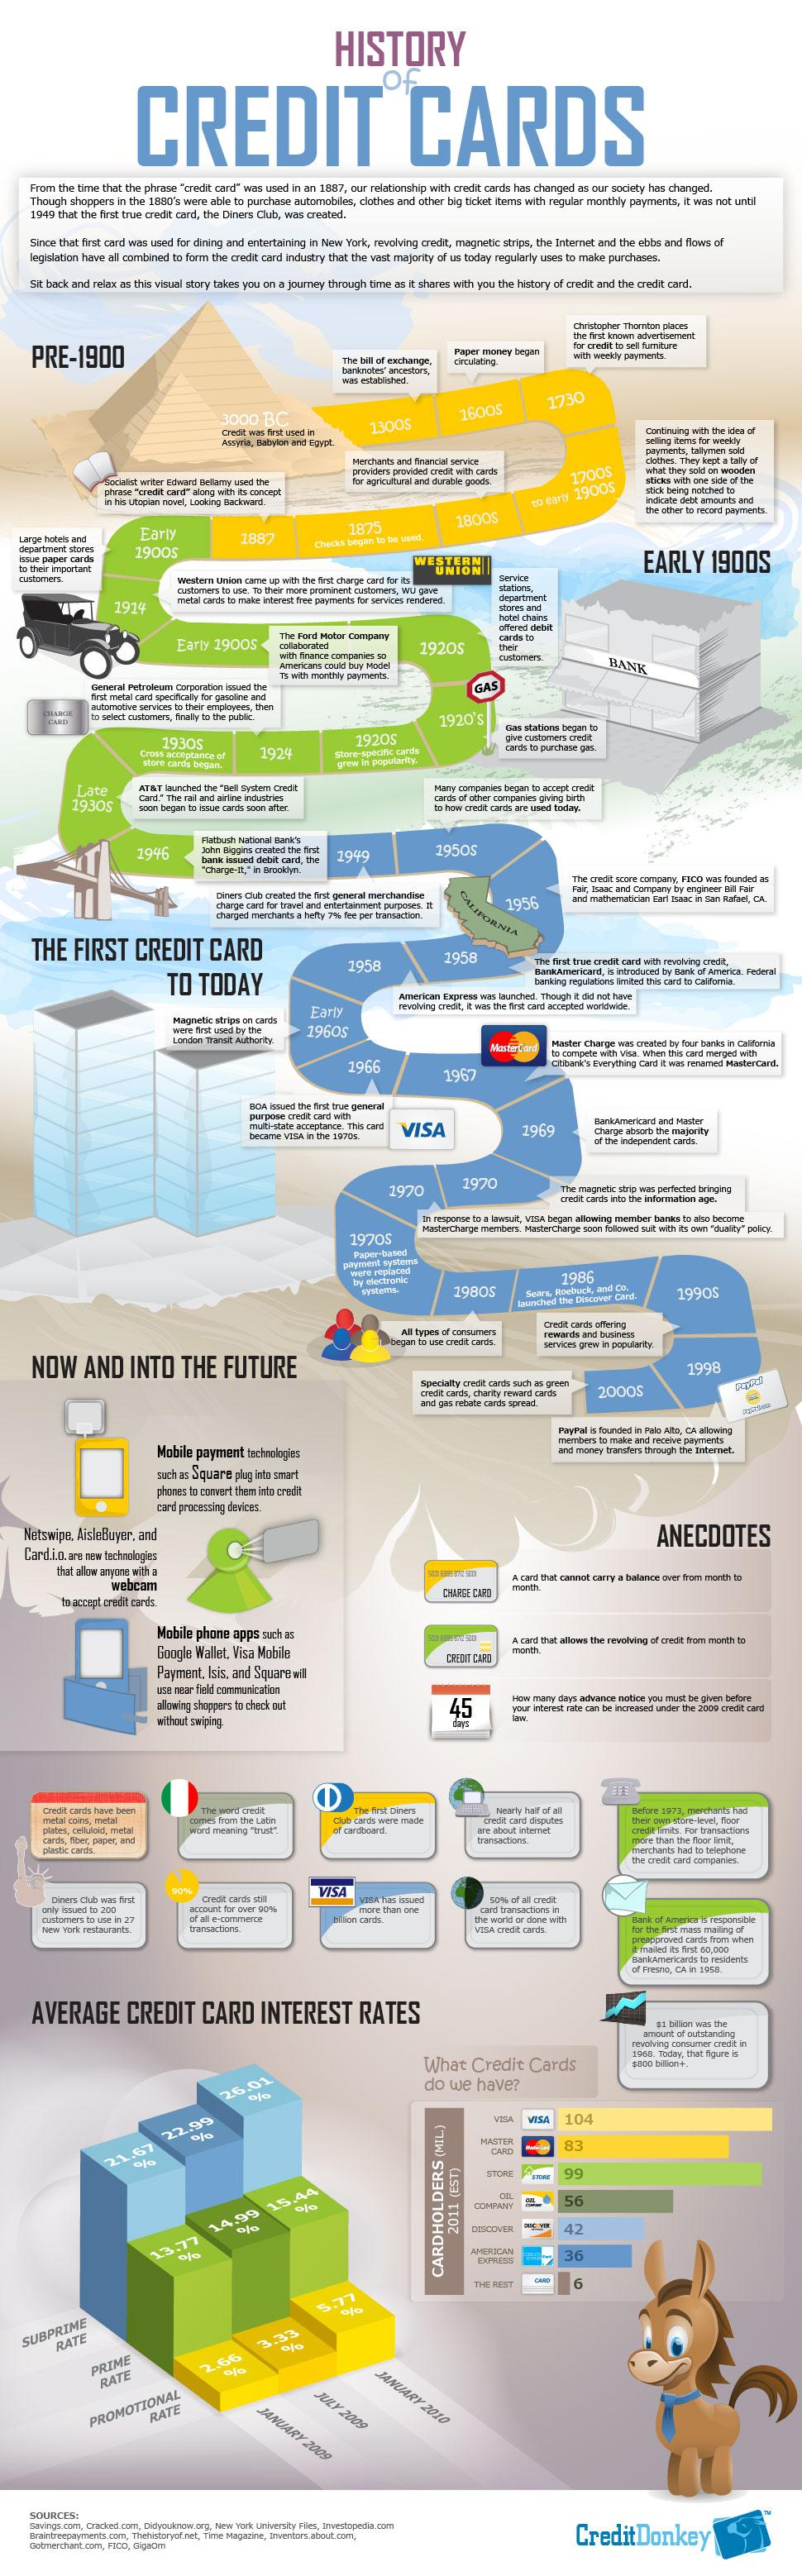 a history of the credit card usage When you're working to build or rebuild your credit history, how you use credit is everything it's important that you use credit the right way to build and maintain a good credit score unfortunately, credit cards don't come with a manual telling you how to use them responsibly you may have.